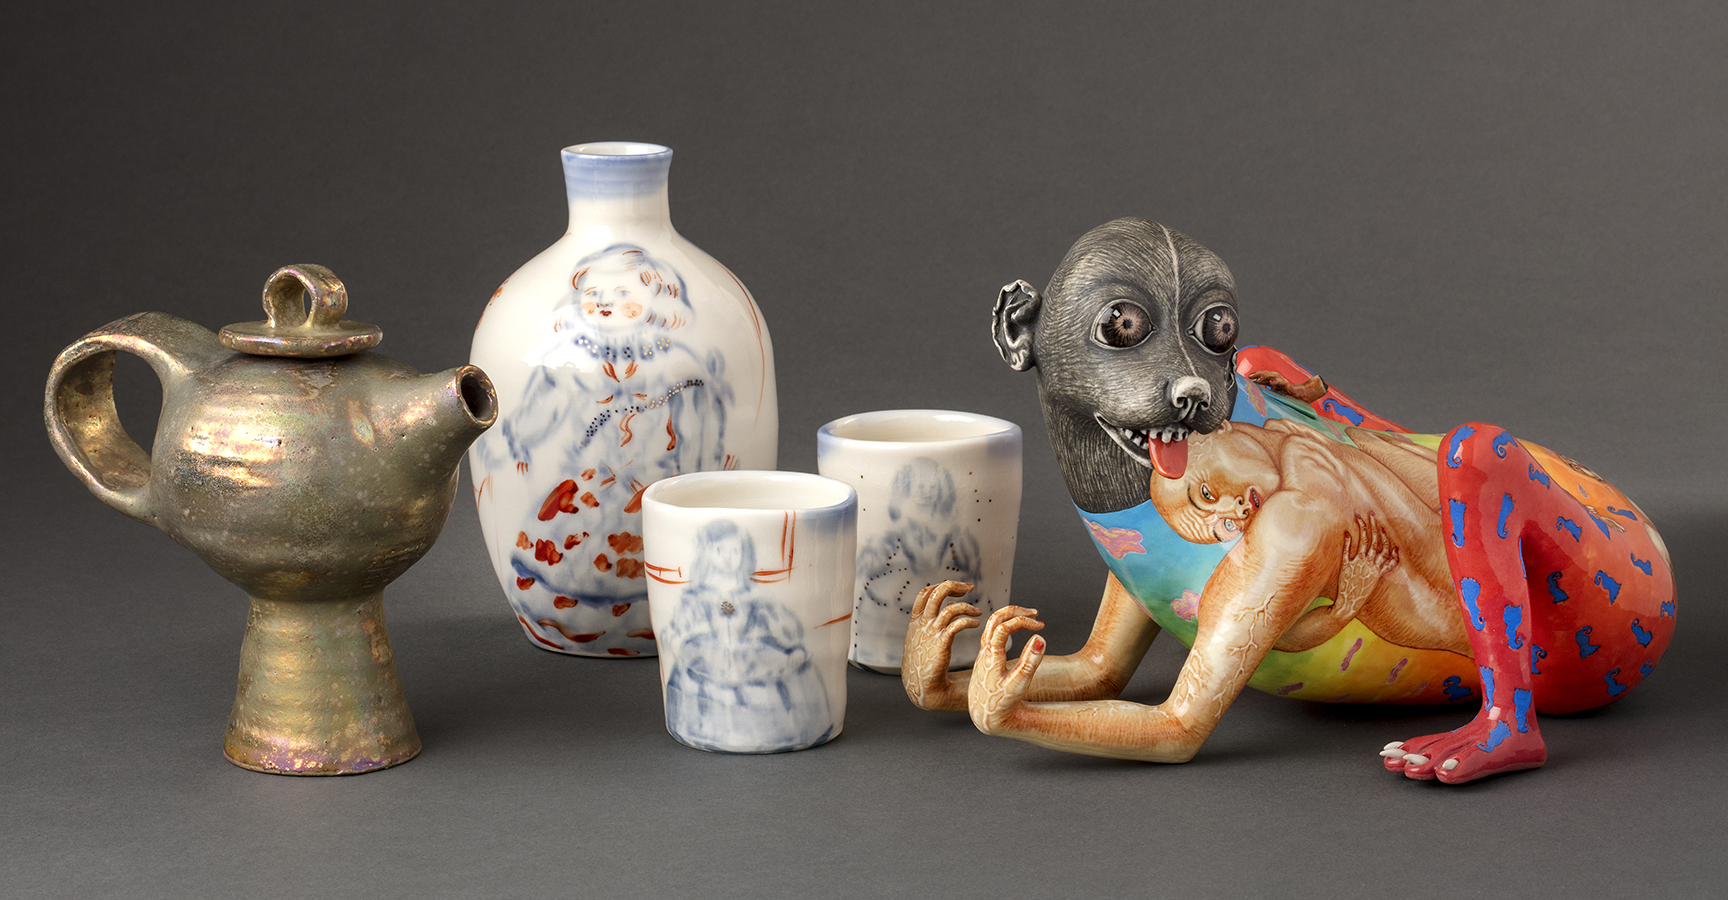 Beyond Function: Contemporary Ceramics From The Donald Clark Collection